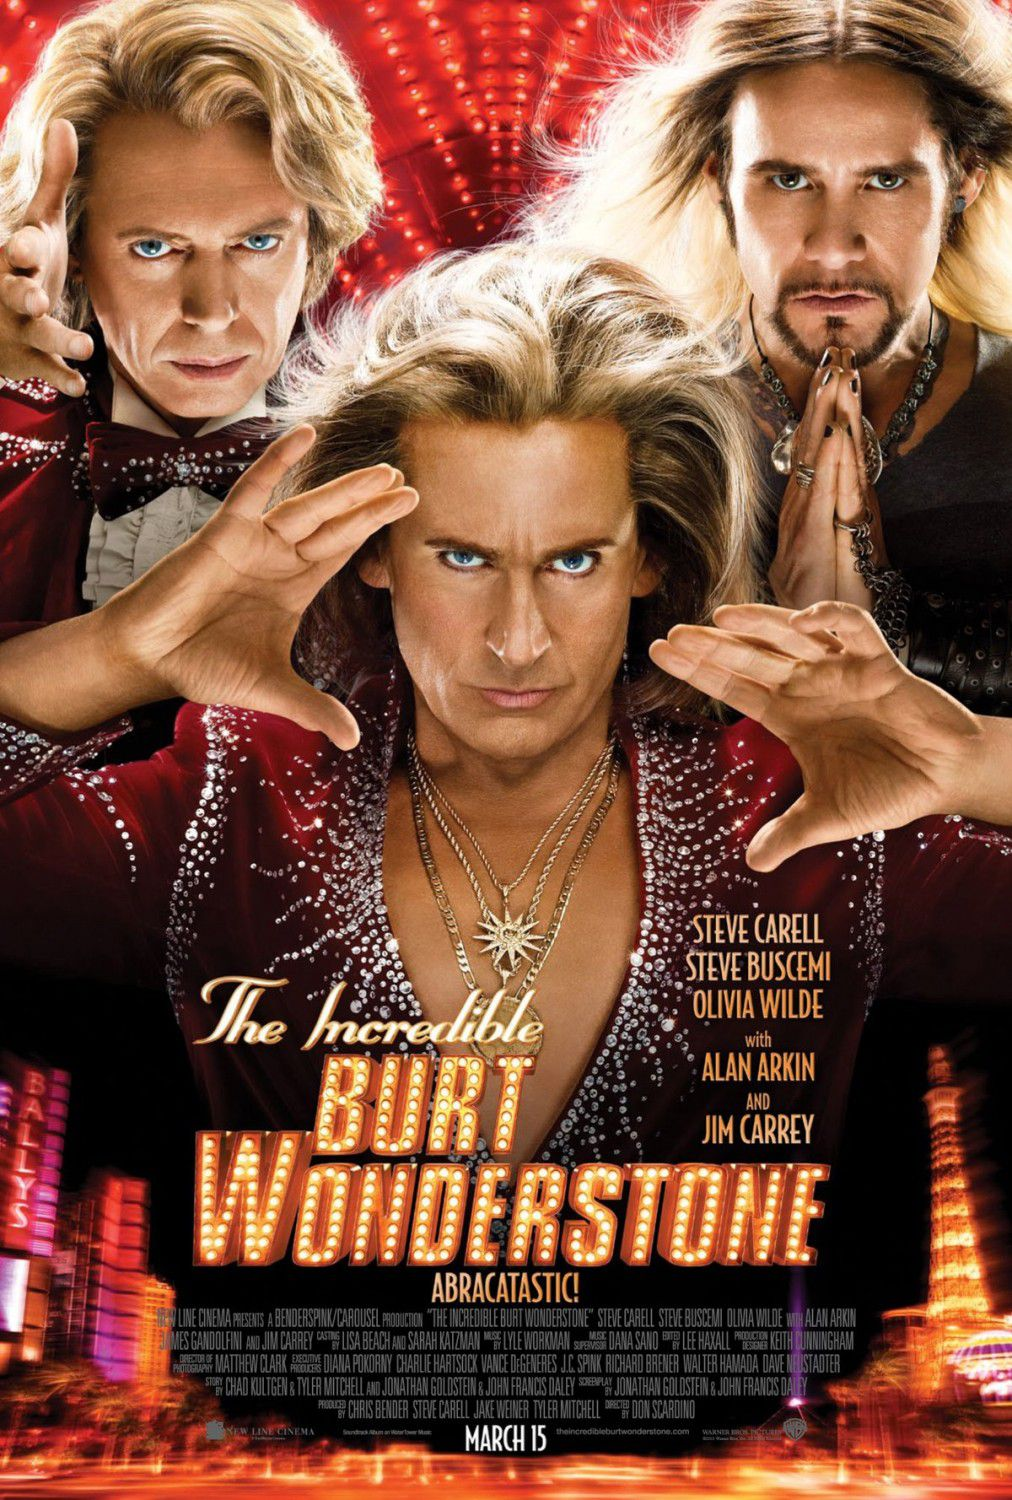 Incredible Burt Wonderstone - film poster - magic and illusion - Steve Carell - Steve Buscemi - Olivia Wilde - Alan Arkin - Jim Carrey ... Abracatastic! Abracastic!